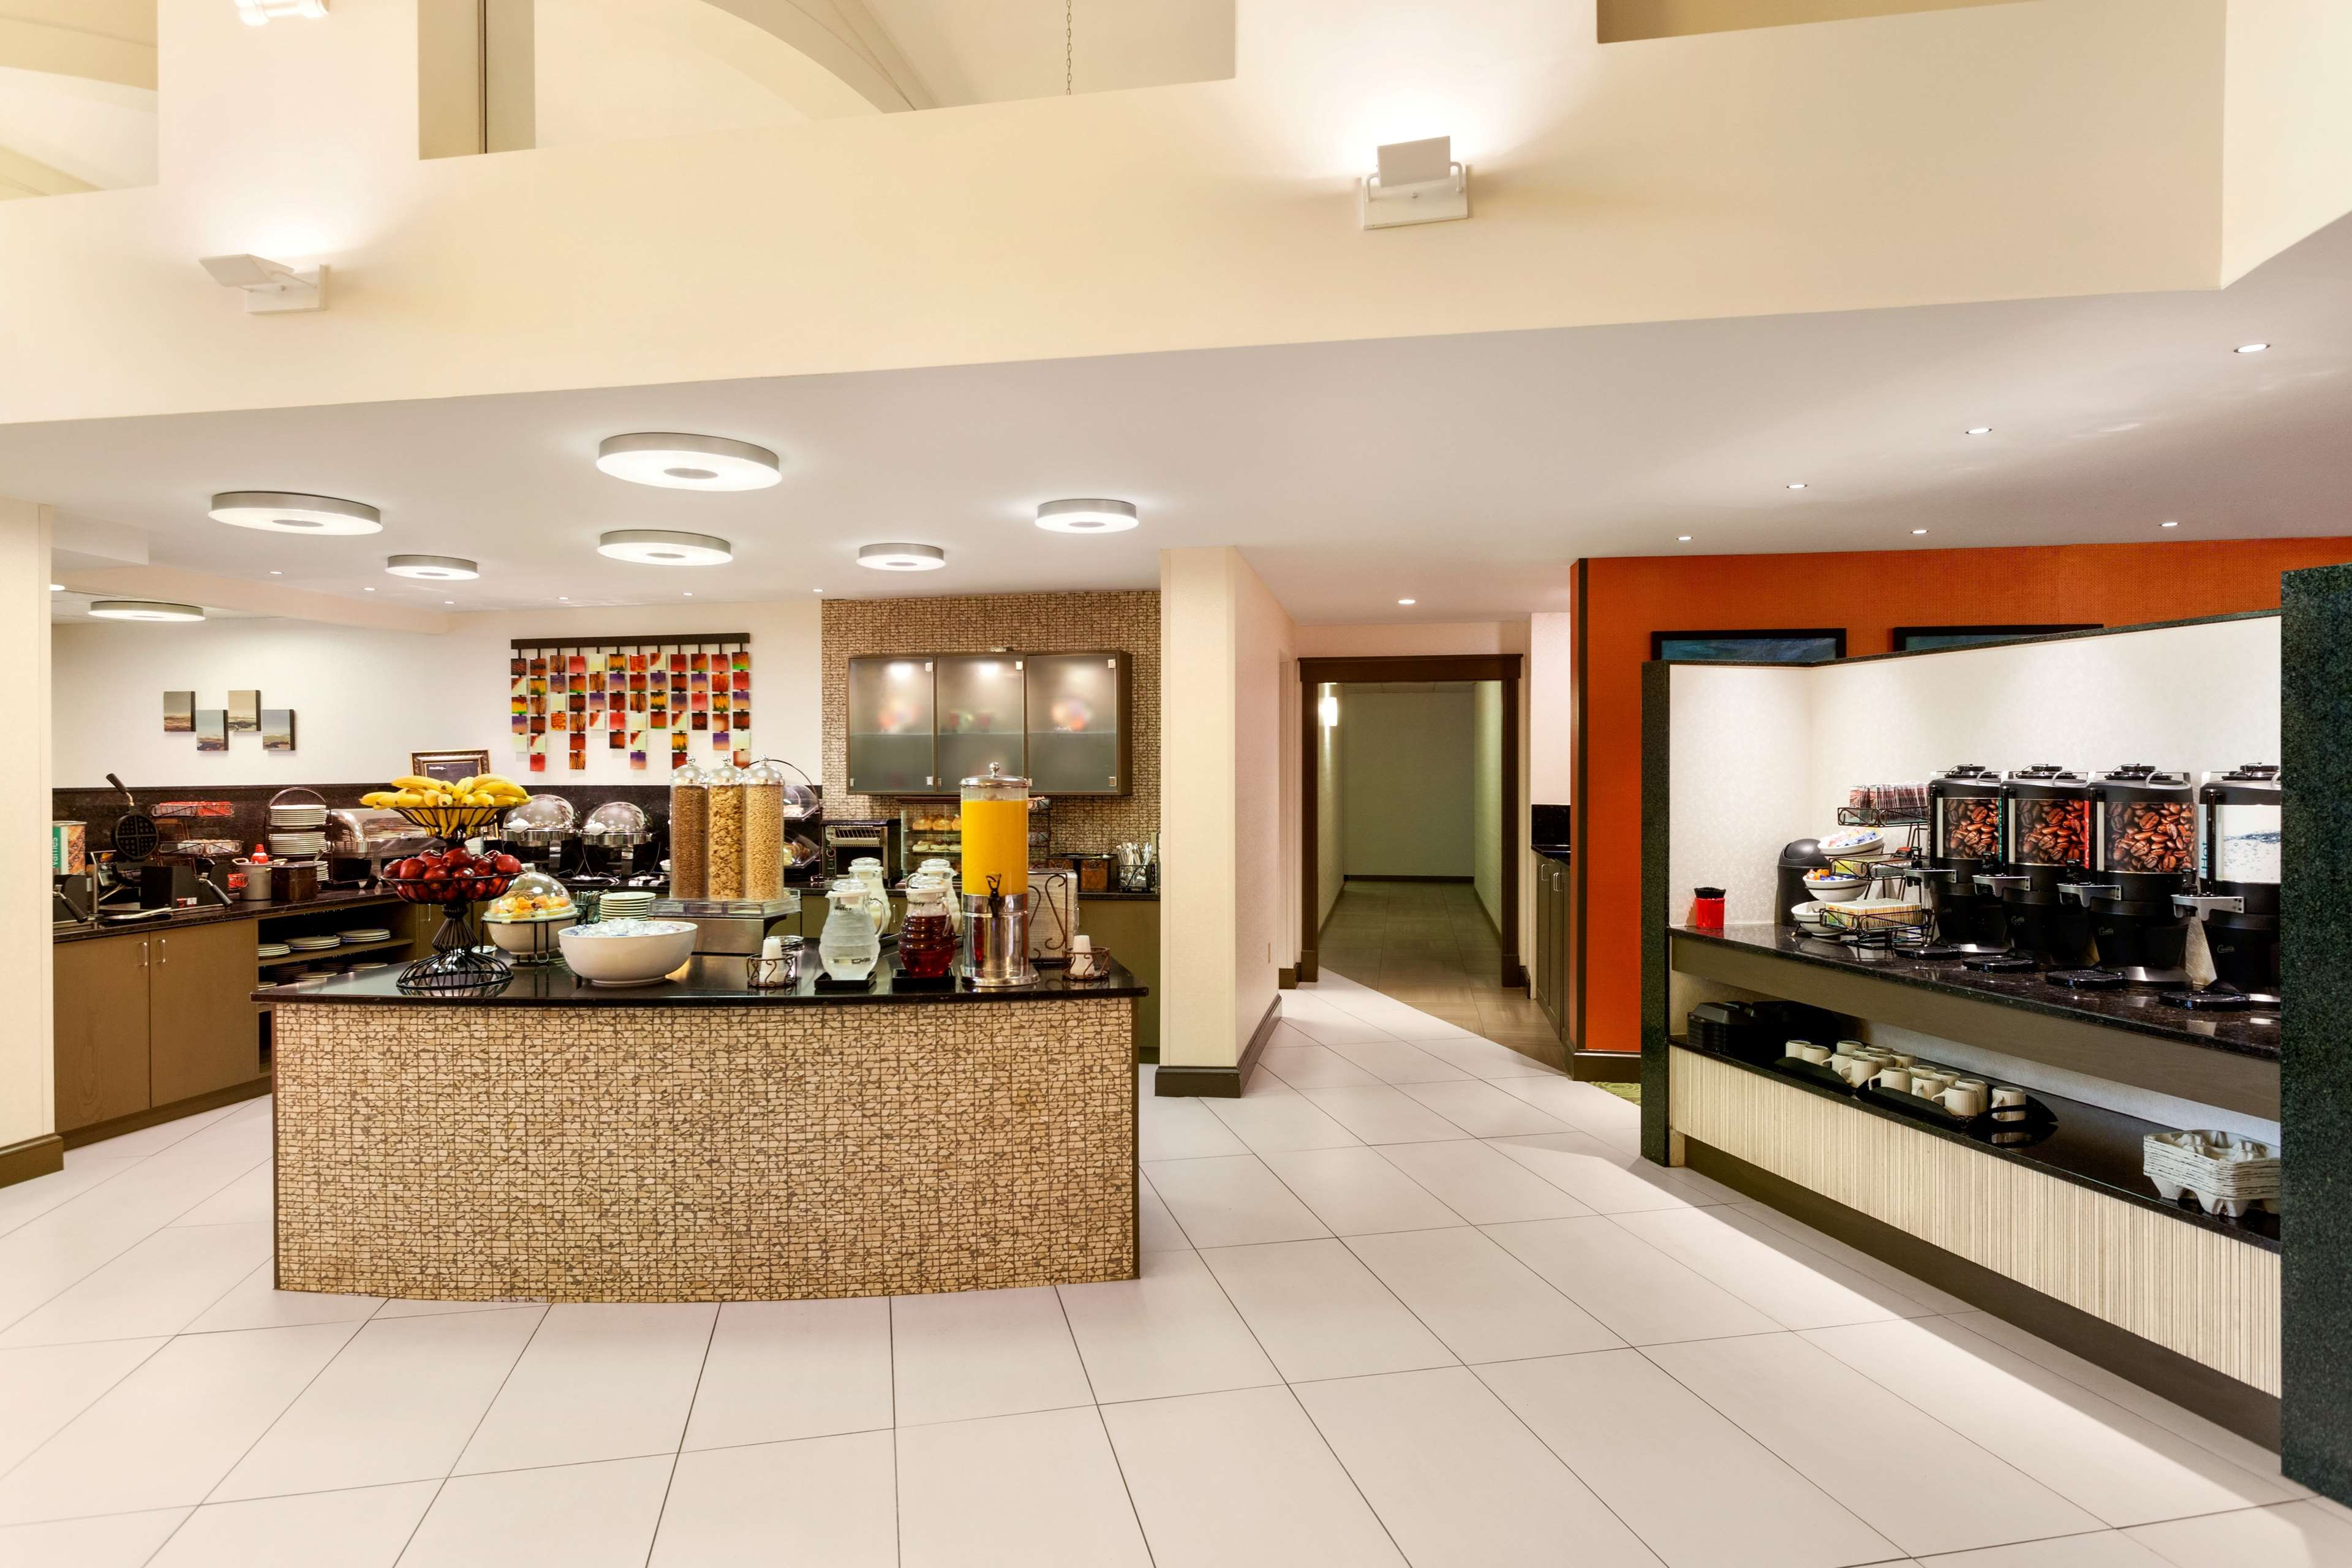 Homewood Suites by Hilton Reading image 6